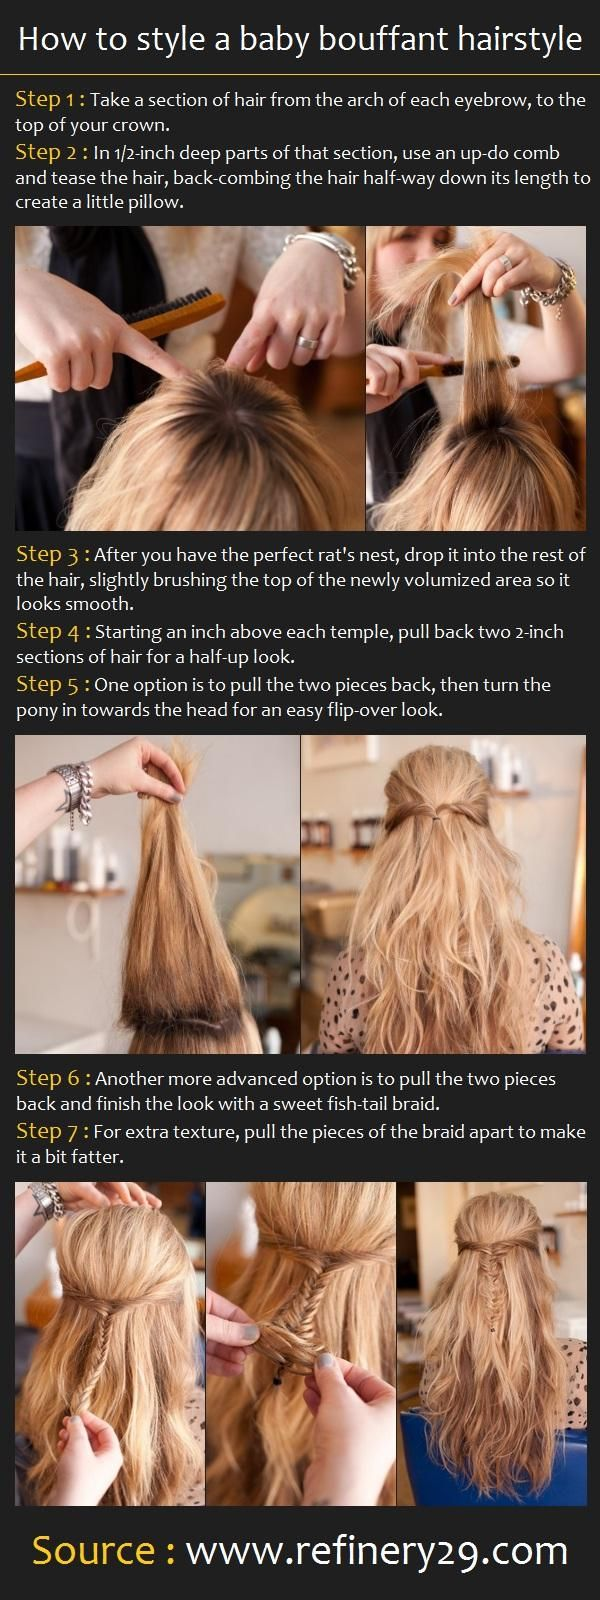 How To Style a Baby Bouffant Hairstyle